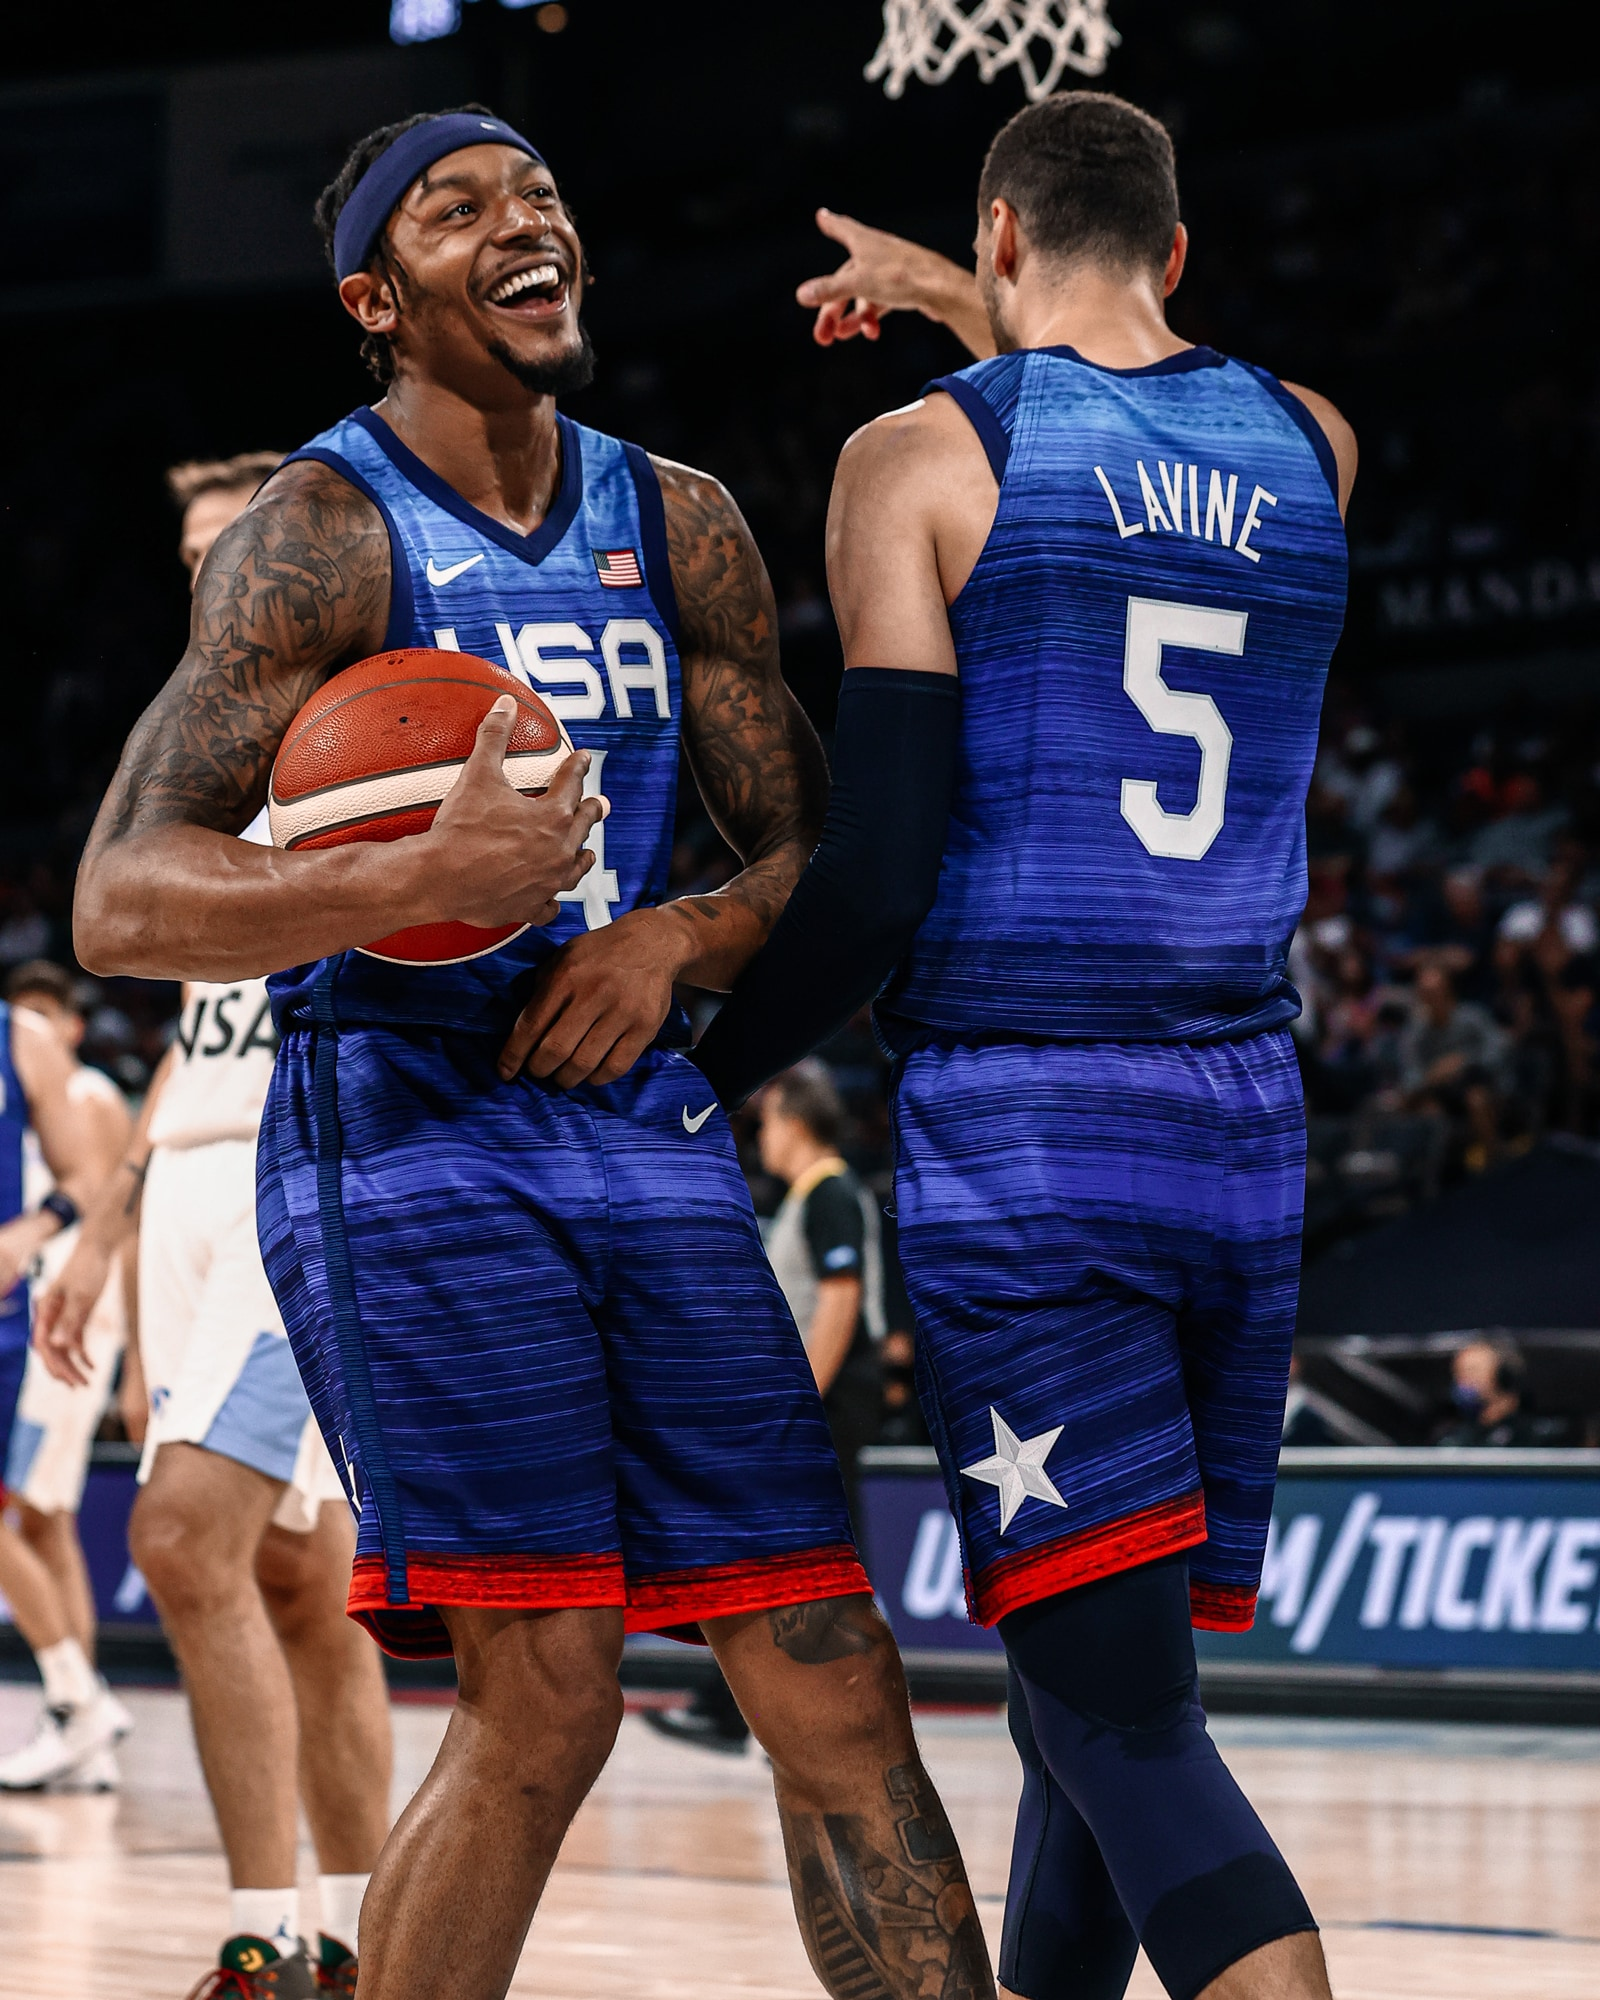 Bradley Beal smiles and reacts to LaVine's ferocious poster dunk against Argentina